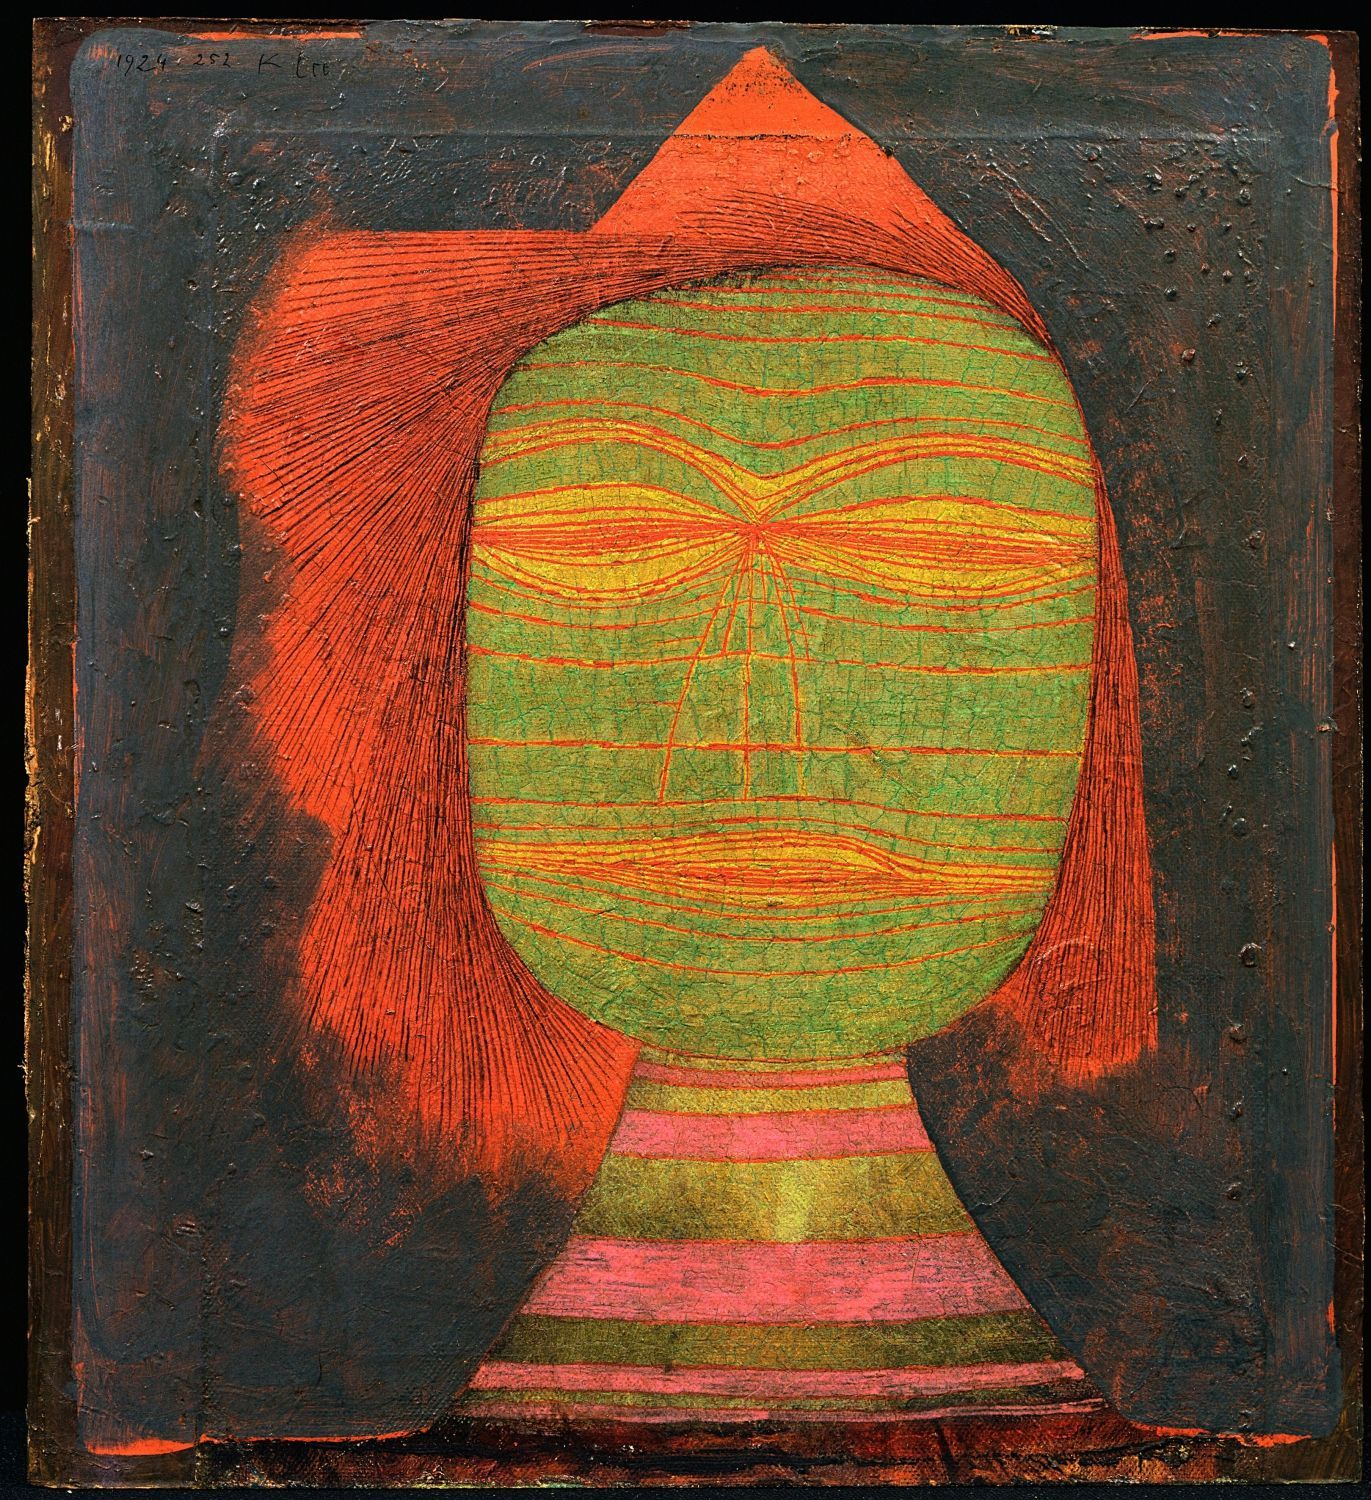 PAUL KLEE SCHAUSPIELER MASQUE COMEDIEN 1924 THE MUSEUM OF MODERN ART NY THE SIDNEY AND HARRIET JANIS COLL 2016 DIGITAL IMAGE THE MOMA SCALA FLORENCE